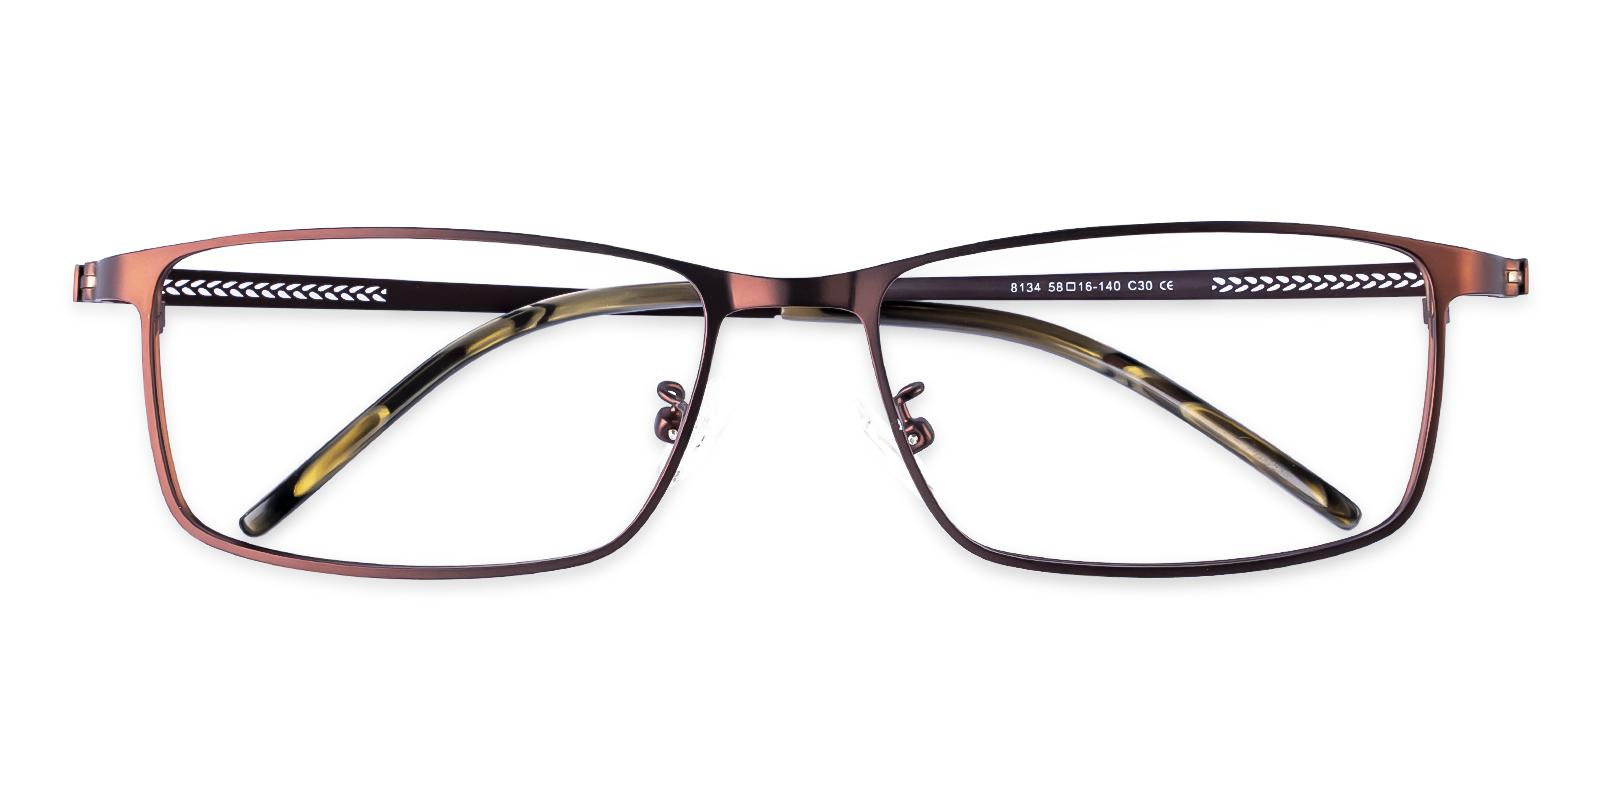 Daniel Brown Metal Eyeglasses , NosePads Frames from ABBE Glasses